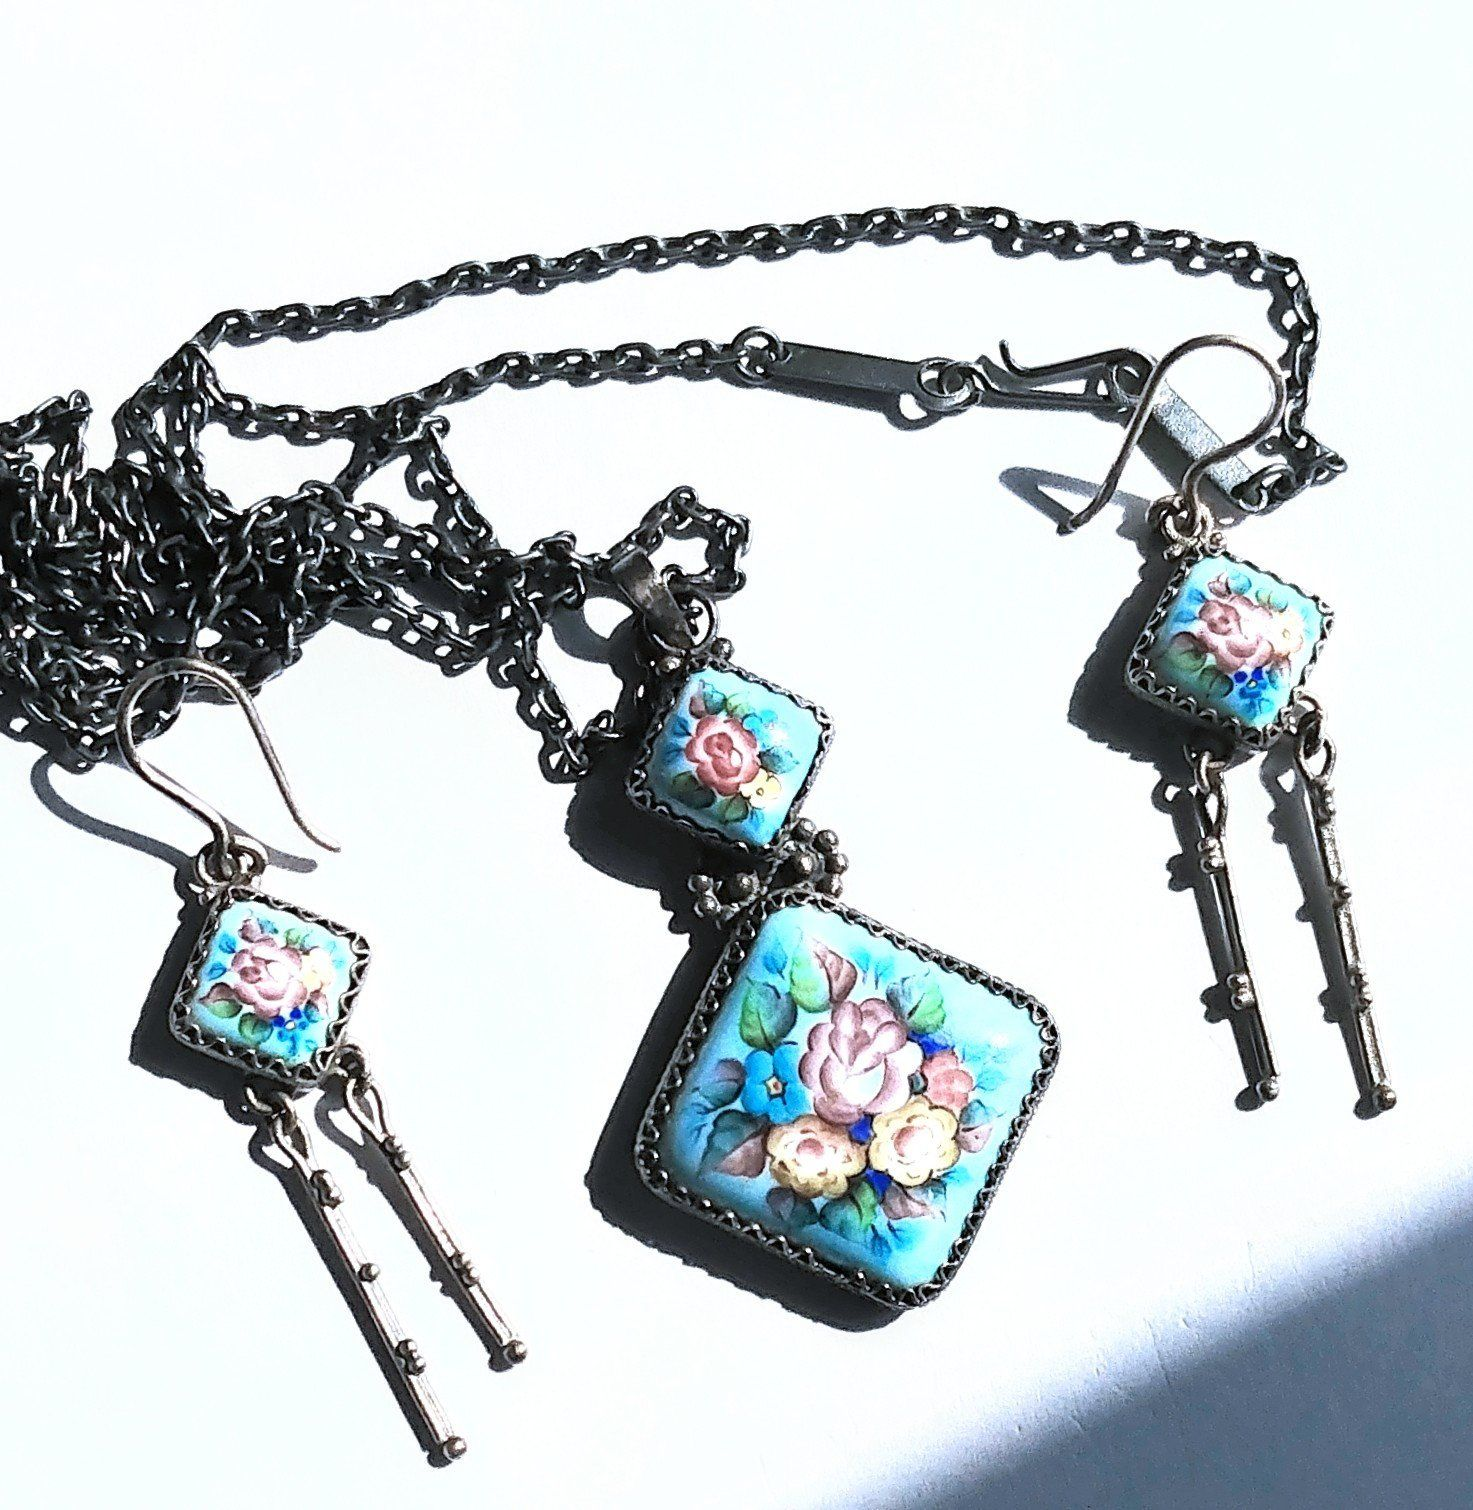 8745bef69 NEW to my #etsy shop: Russian Jewelry Set Pendant Necklace and Earrings  Handpainted Flowers